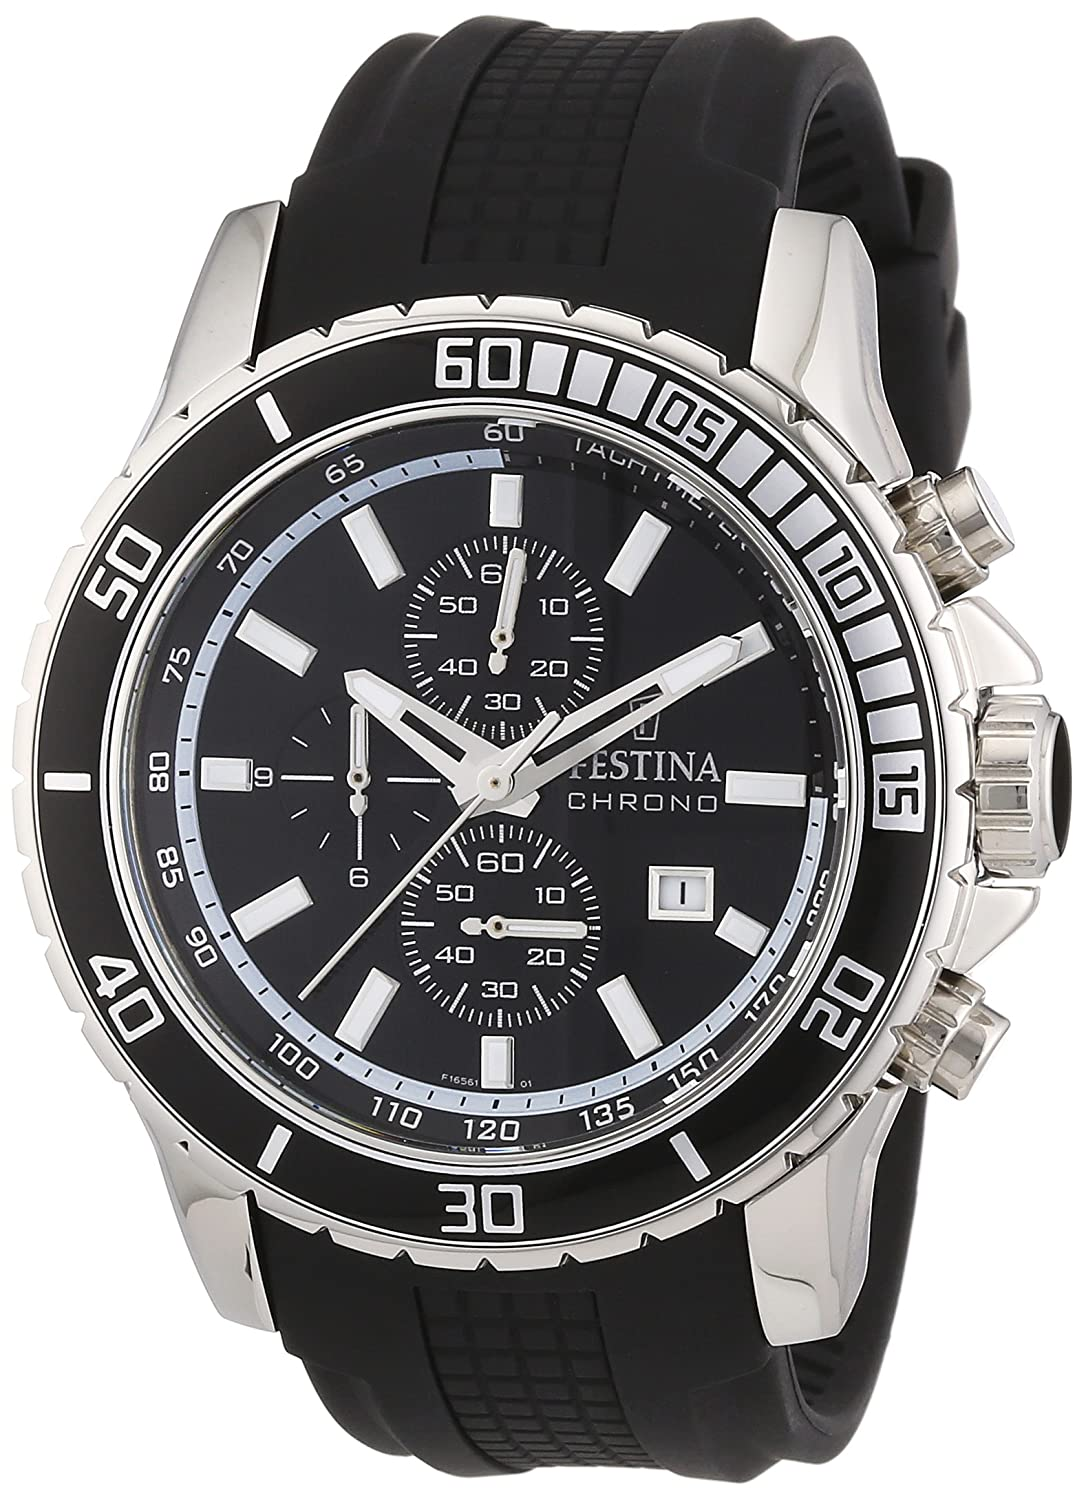 Amazon.com: Festina Mens Stainless Steel Rubber Strap Black Dial Chronograph Watch F165611: Watches